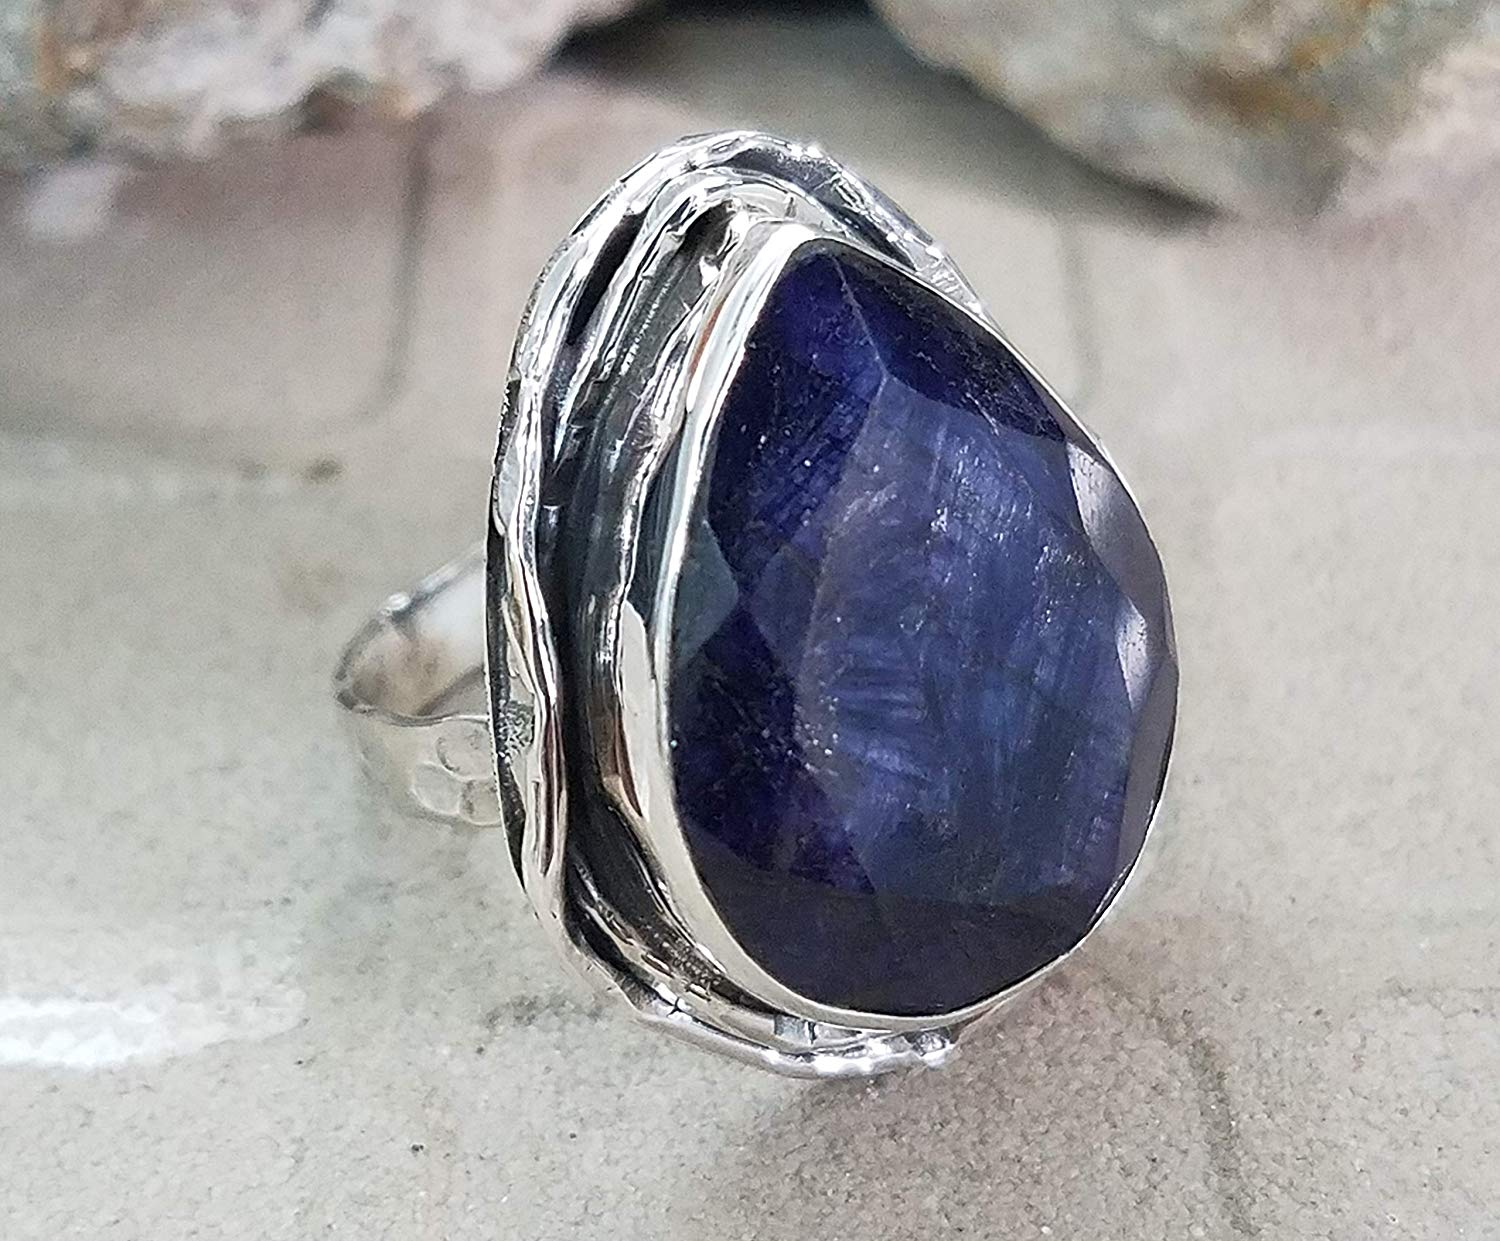 Sapphire Ring.925 Sterling Silver.Classic Modern Design.Casual & Fine Jewelry.Beautiful Blue Ring.Vintage Style Ring.Filigree & Victorian Ring.Fantastical Jewel.Charm & Top Ring.Mermaid Gift